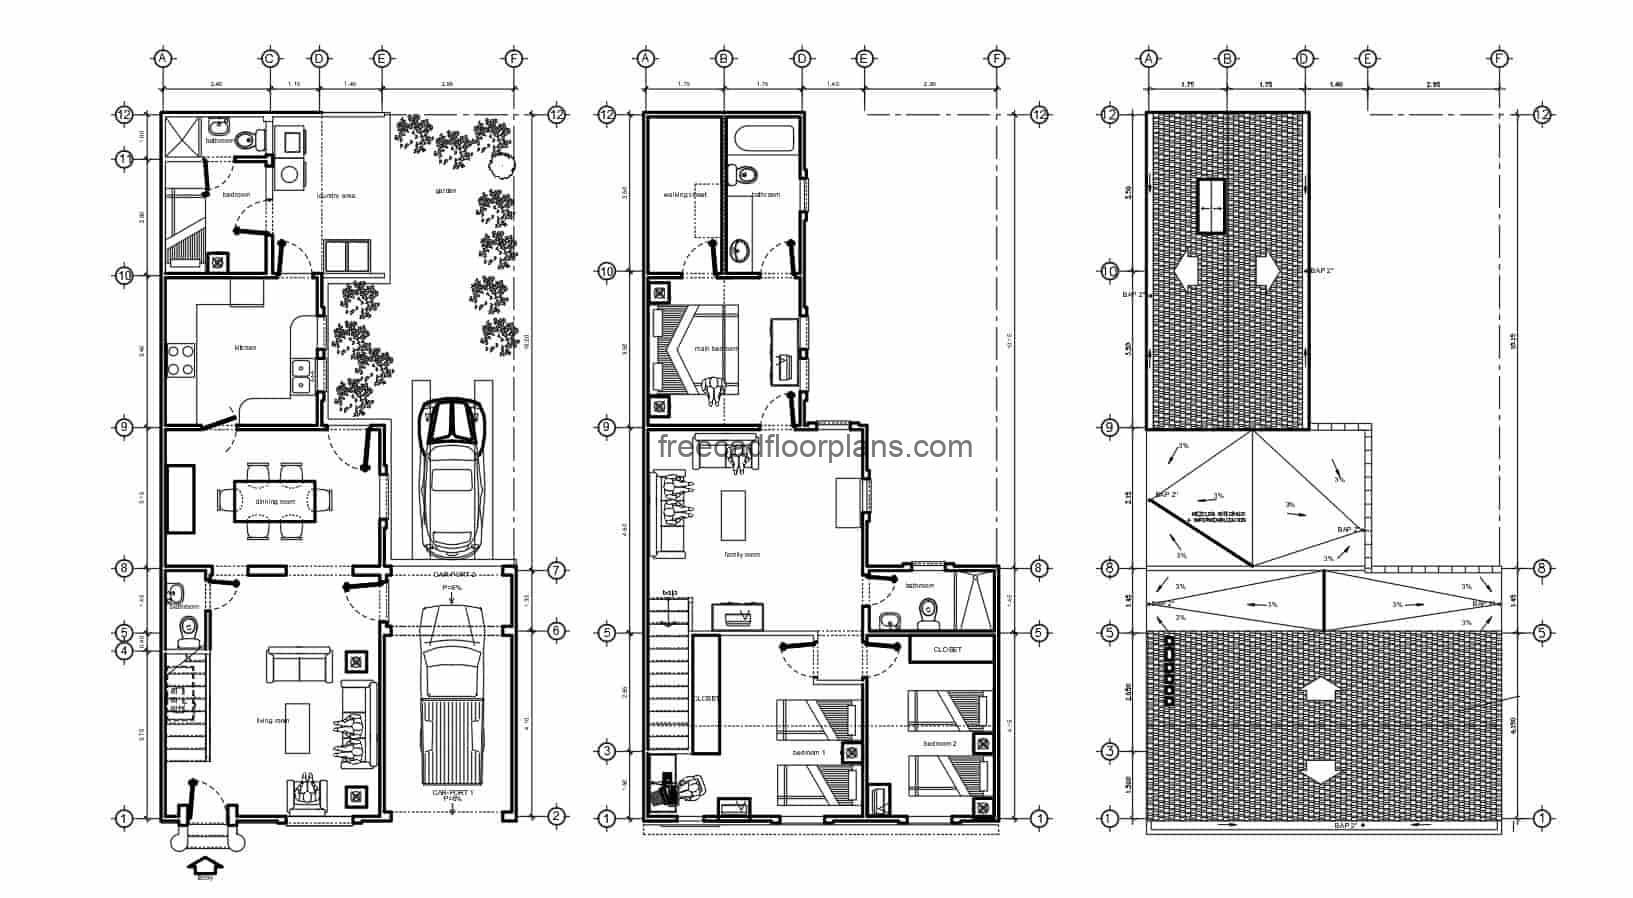 Architectural and dimensional plans of a two-level residence with four rooms and usable roof, plans designed in Autocad DWG, construction details, floor plan with Autocad blocks and dimensions.